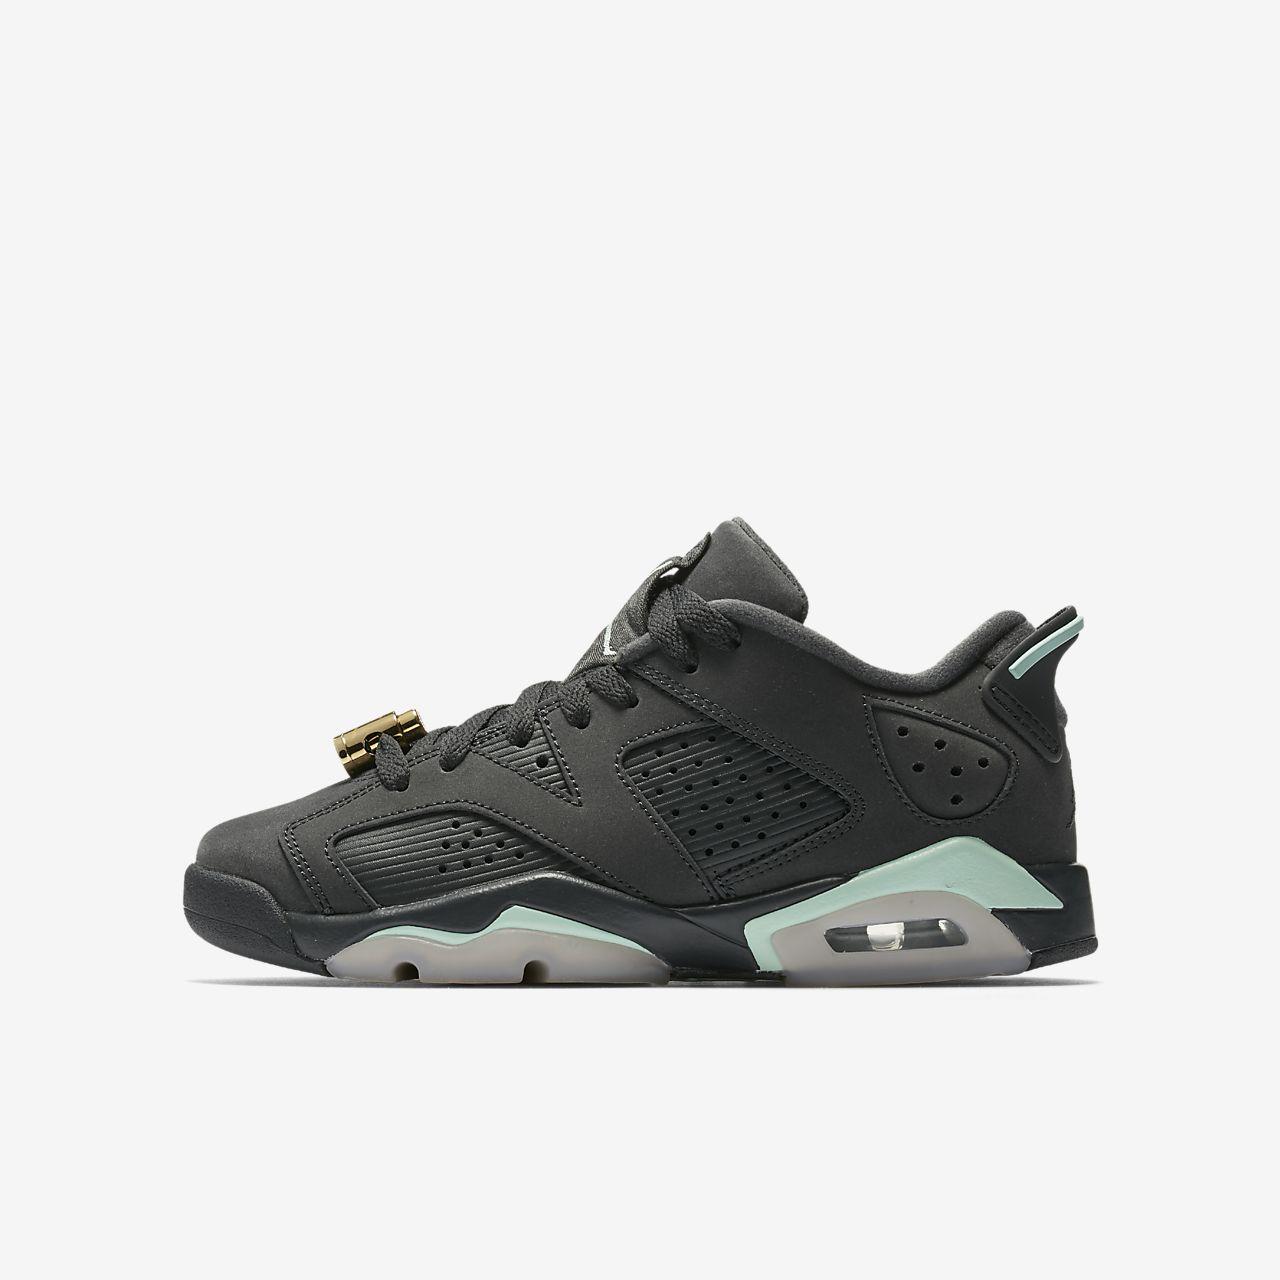 new arrivals b2584 24031 Air Jordan Retro 6 Low Older Kids' Shoe